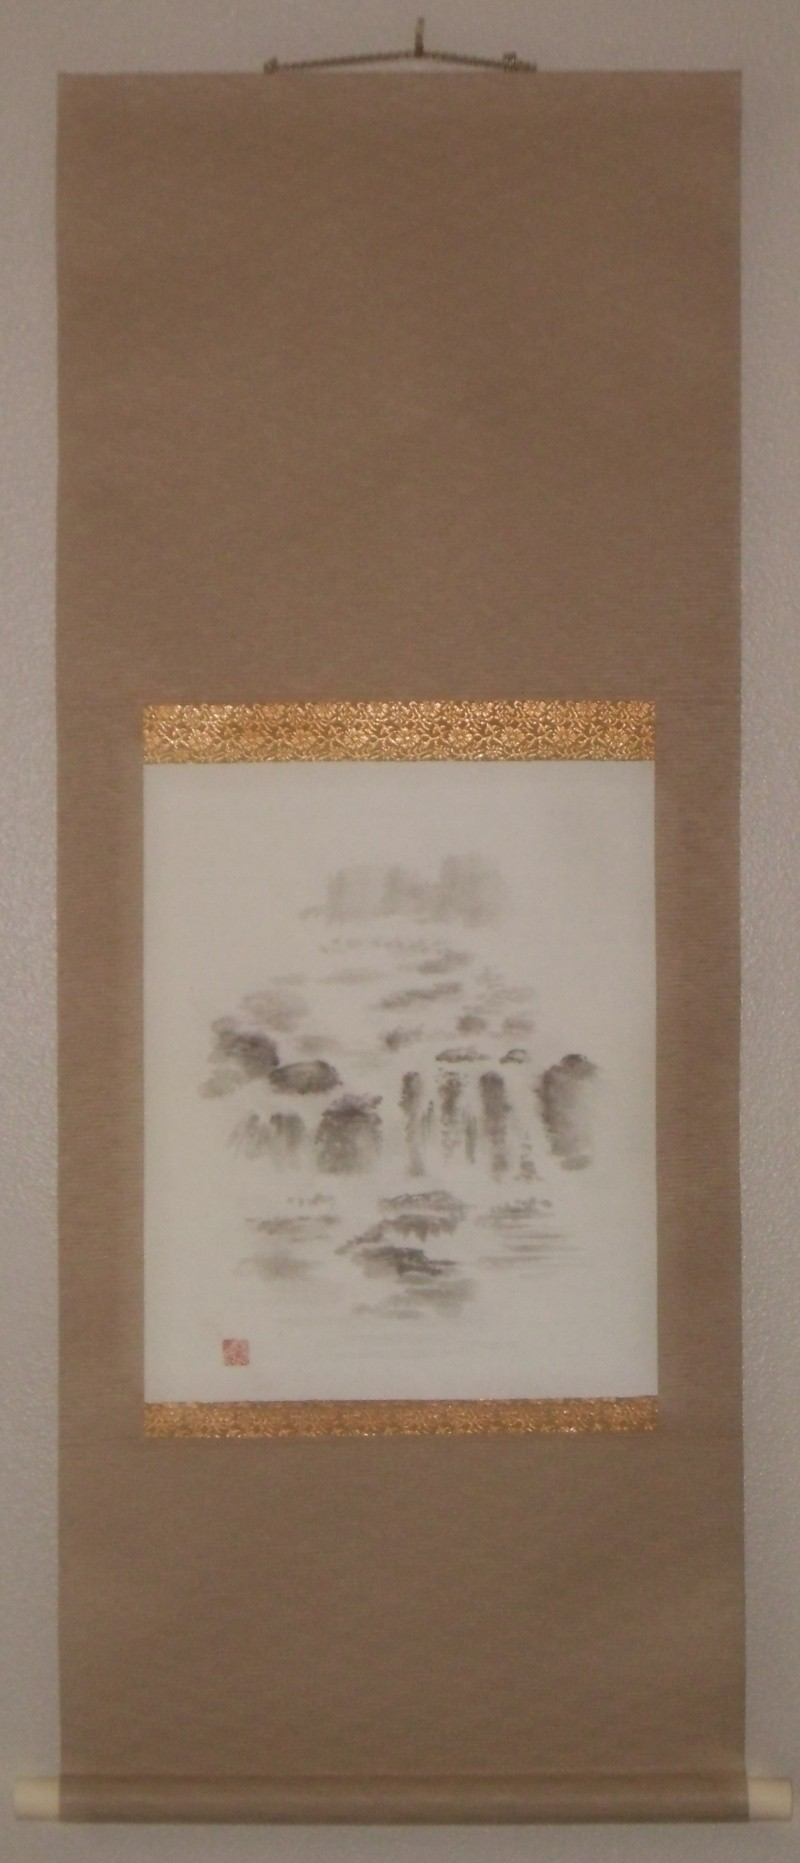 The Waterfall Scroll that was sold Ibc_la11